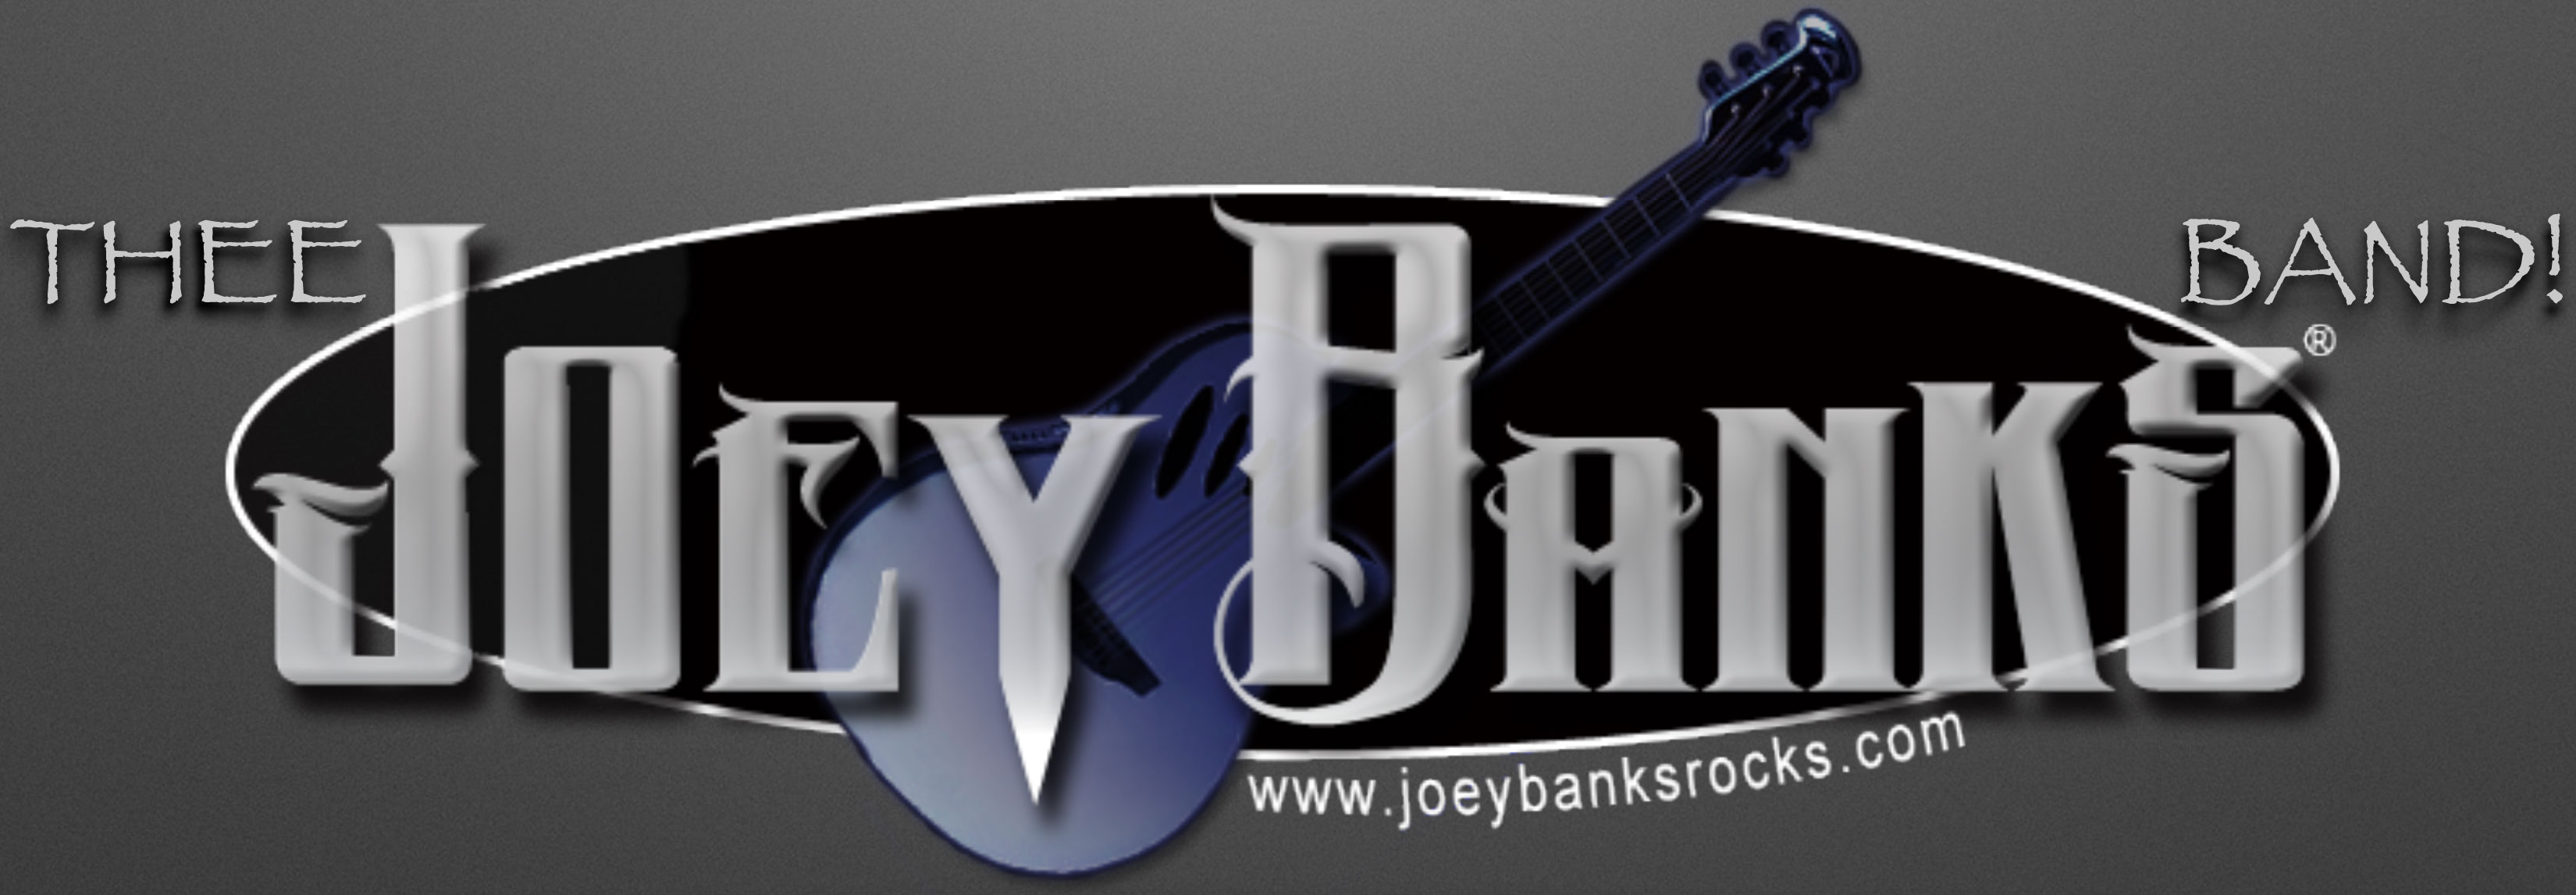 Thee Joey Banks Band logo